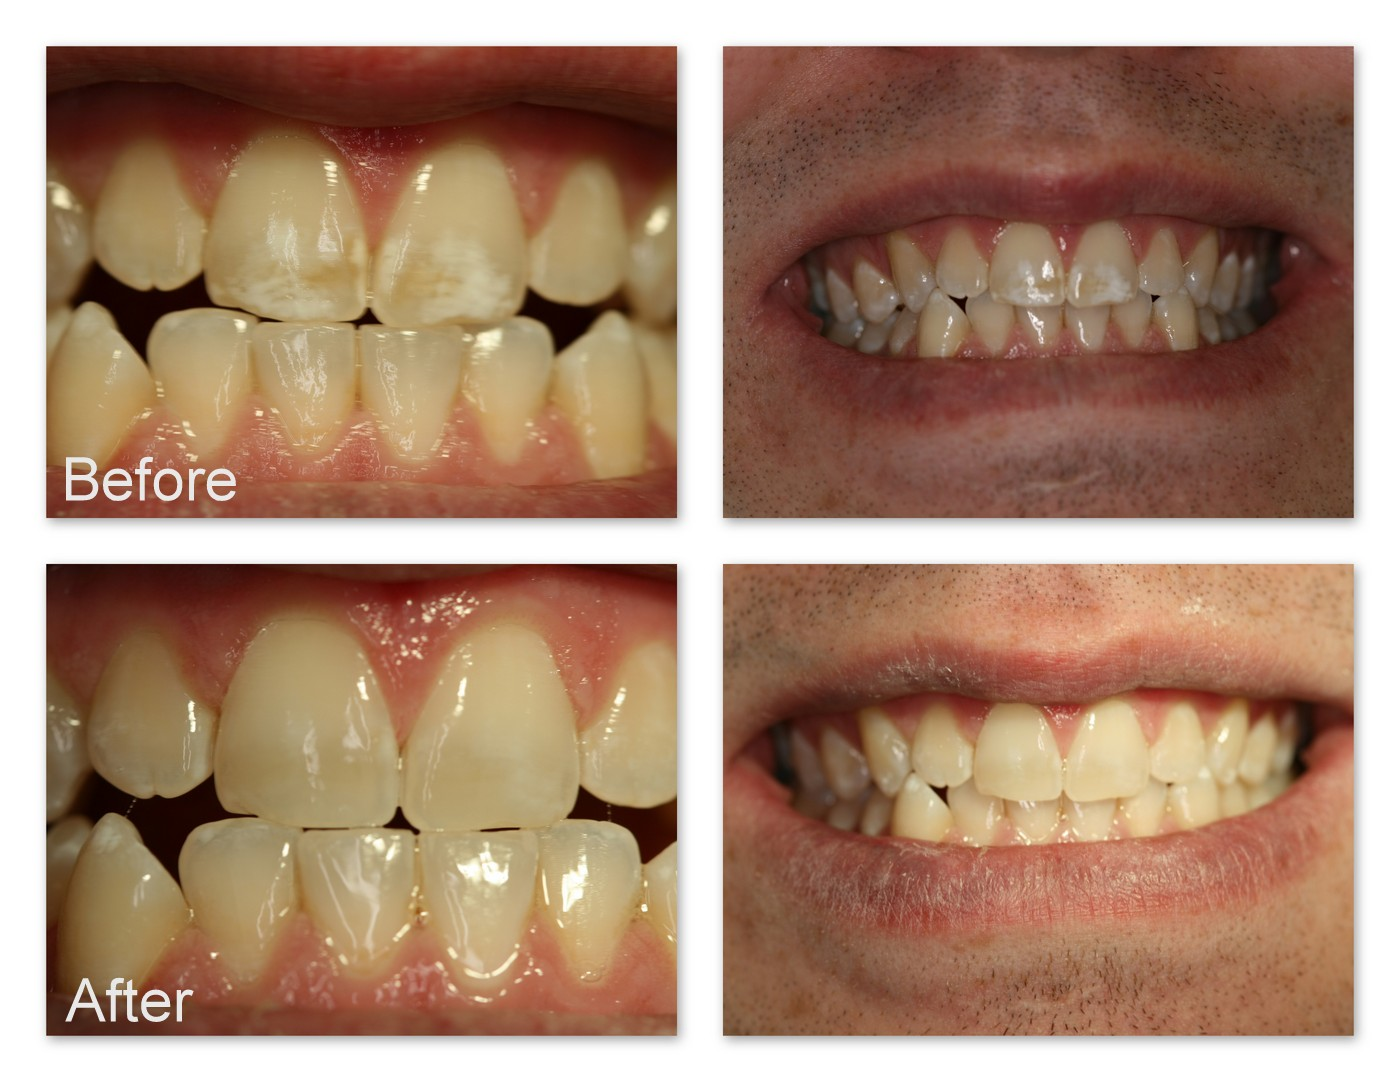 Before- This patient didn't like the brown and white spots on his teeth. After- Dr. Jack Hosner of Portage, MI removed the stains in a few minutes comfortably without anesthetic.